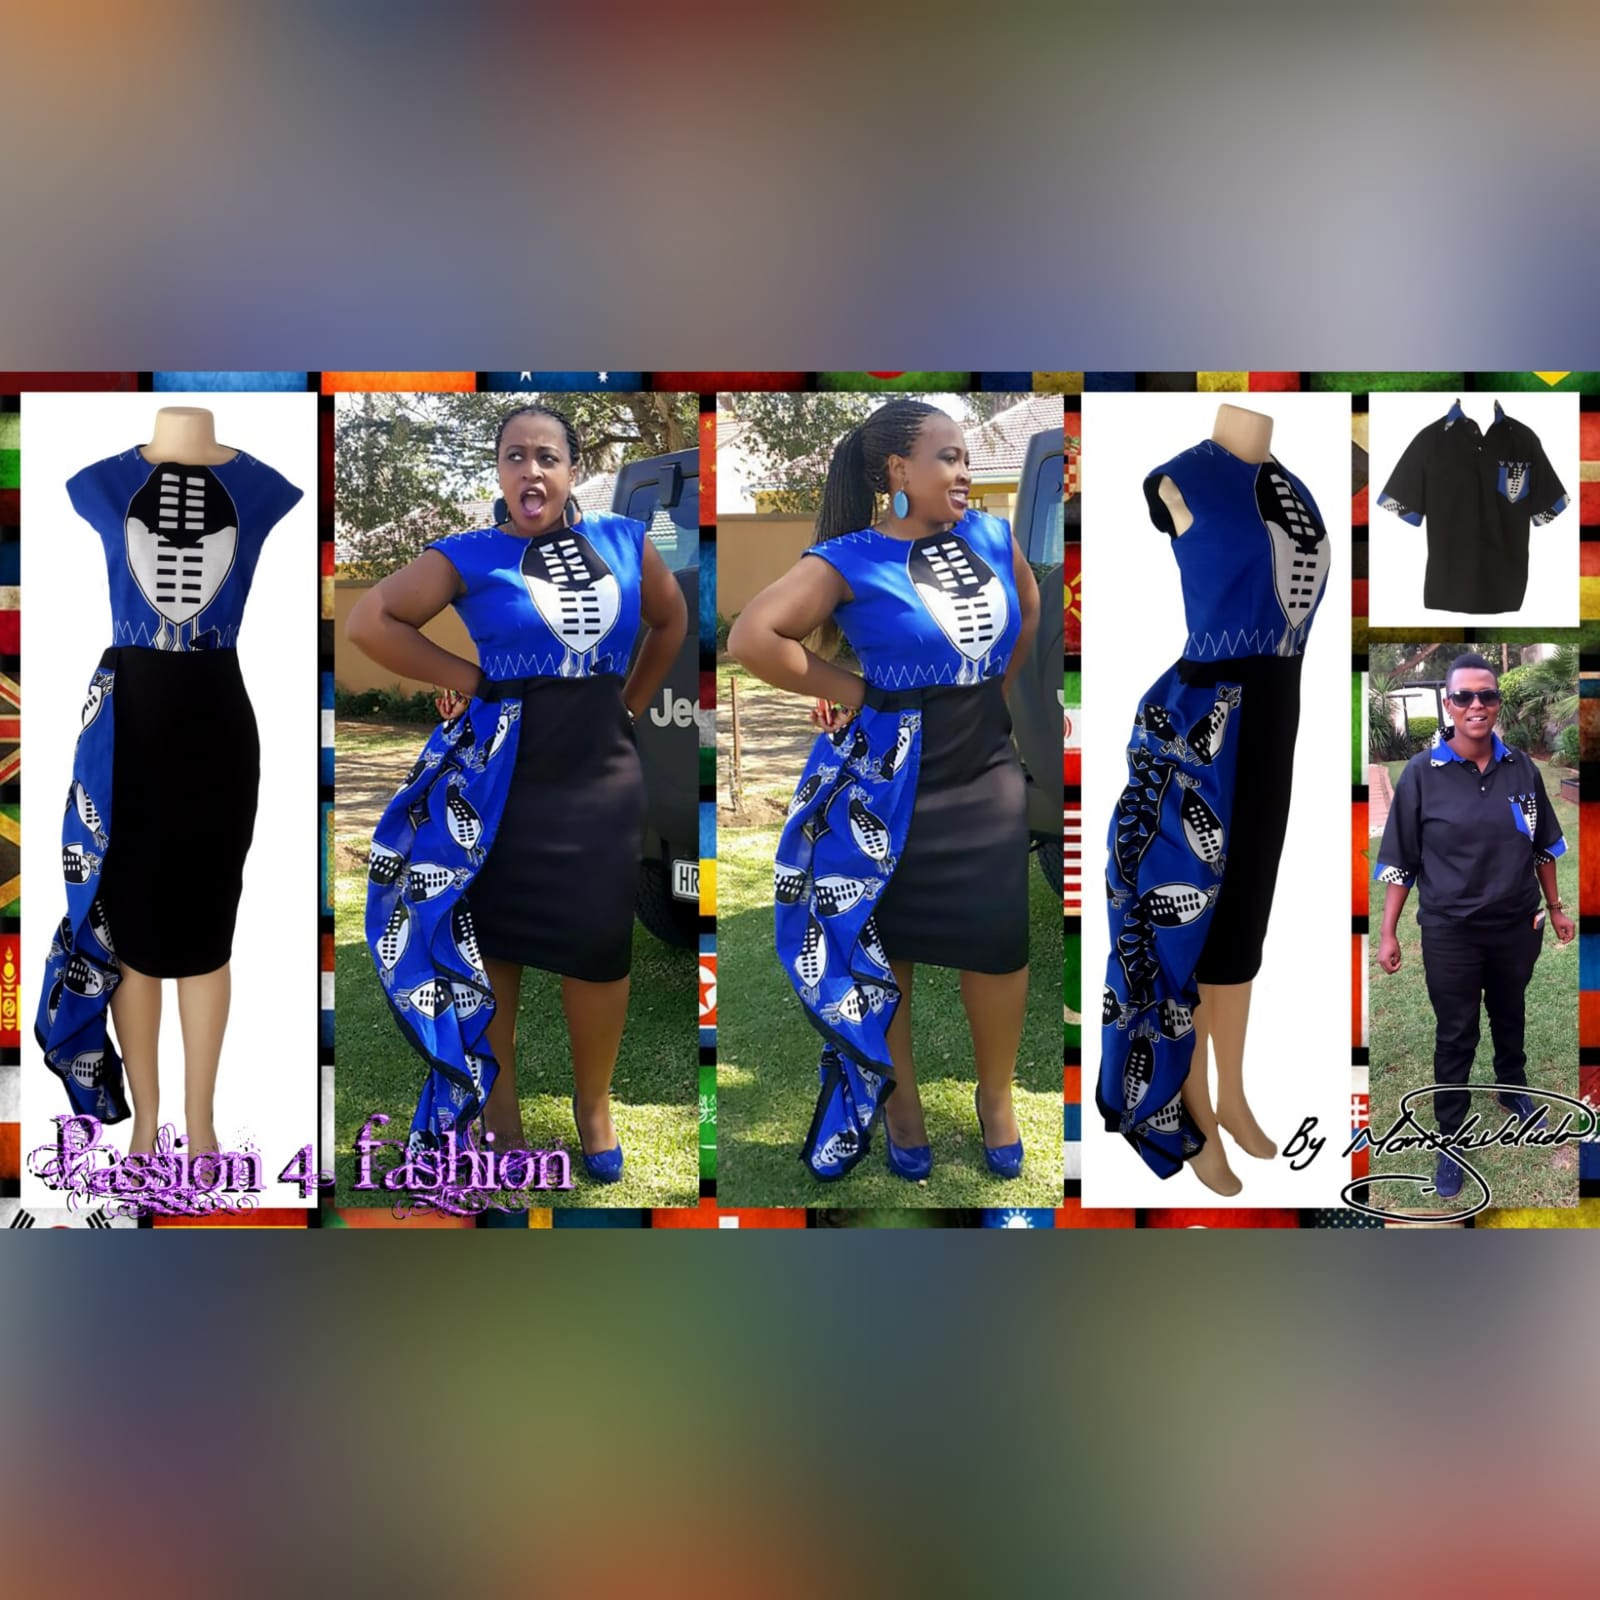 Blue swati knee length dress with hip frill 7 modern traditional knee-length fitted swati dress in blue, black and white. With a hip frill. With matching black golf shirt detailed with swati fabric. Traditional wedding attire.